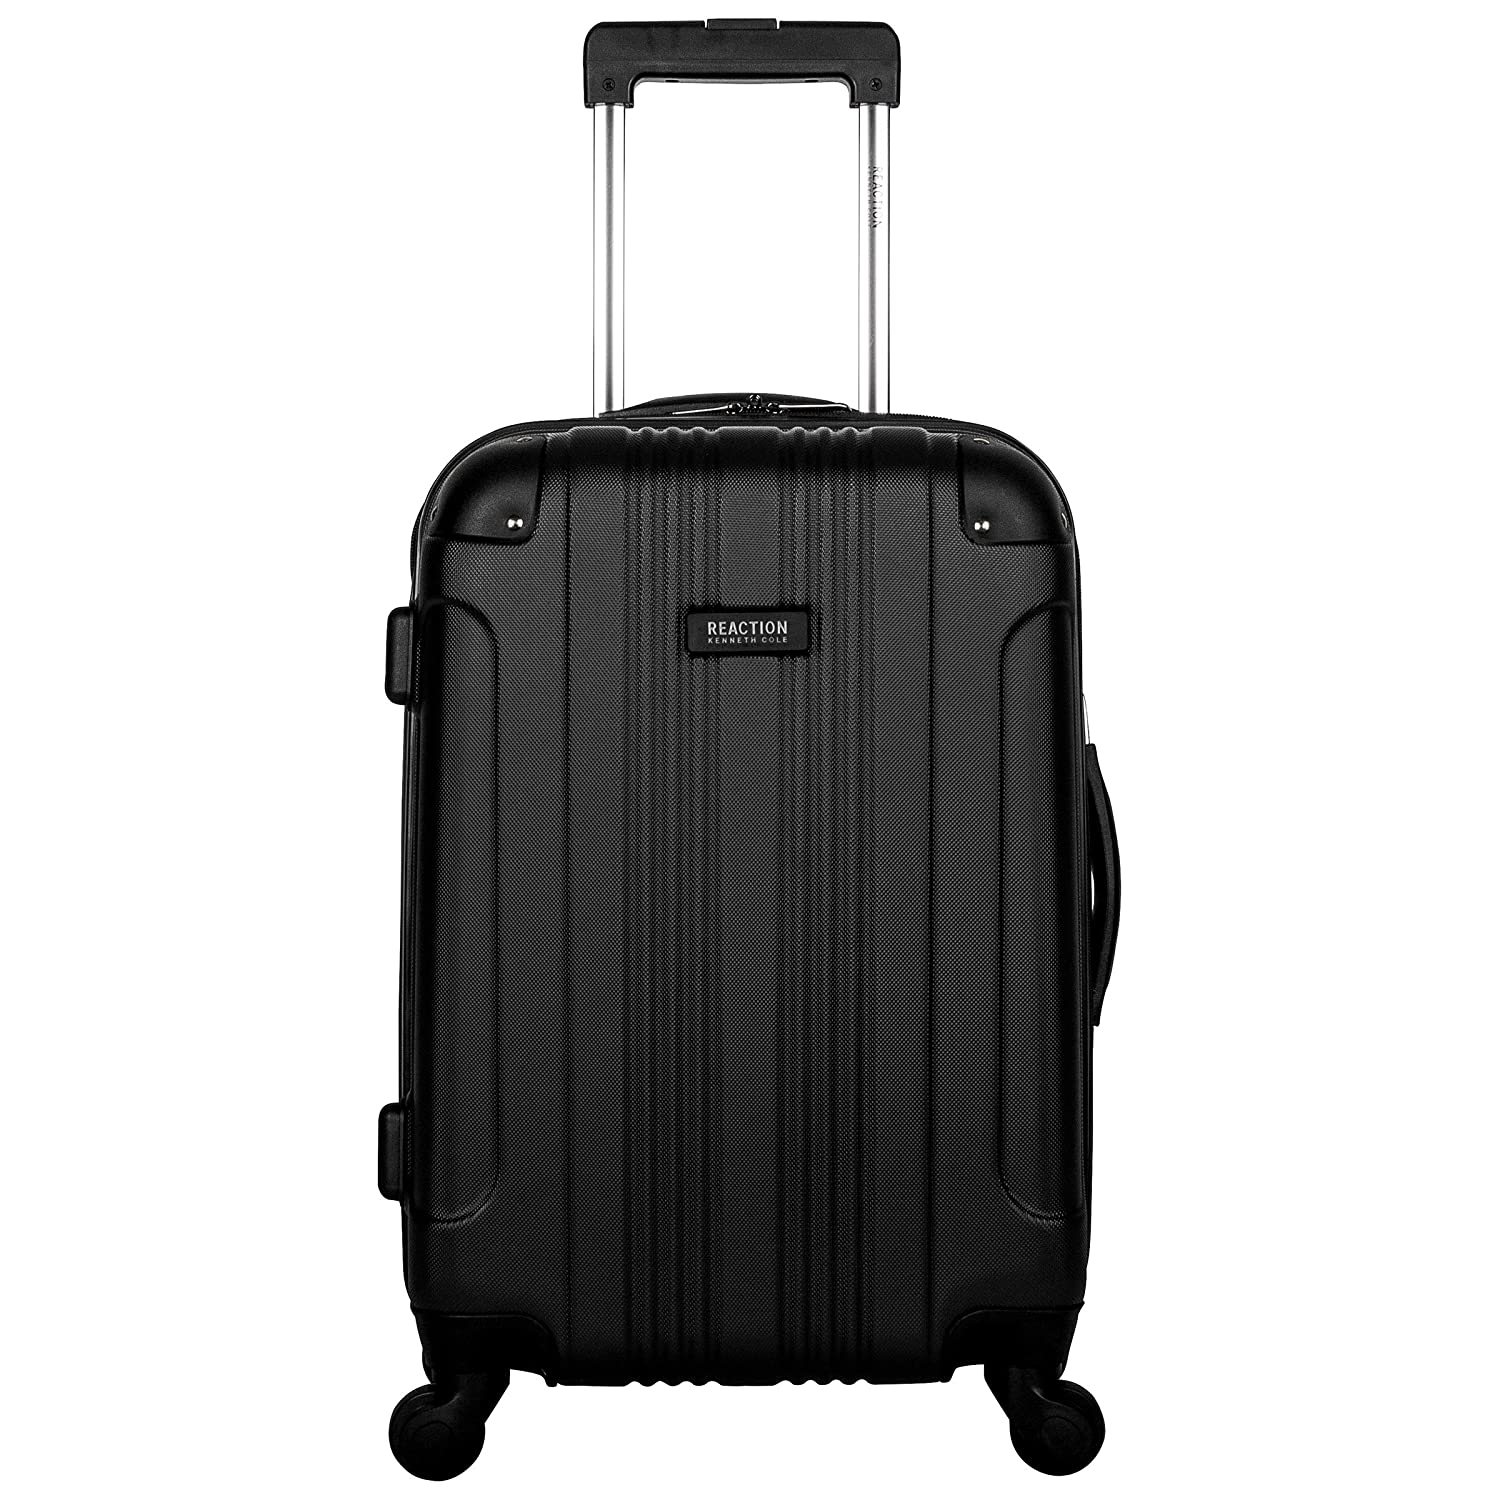 The Kenneth Cole Reaction Out Of Bounds Luggage travel product recommended by Dane Kolbaba on Lifney.